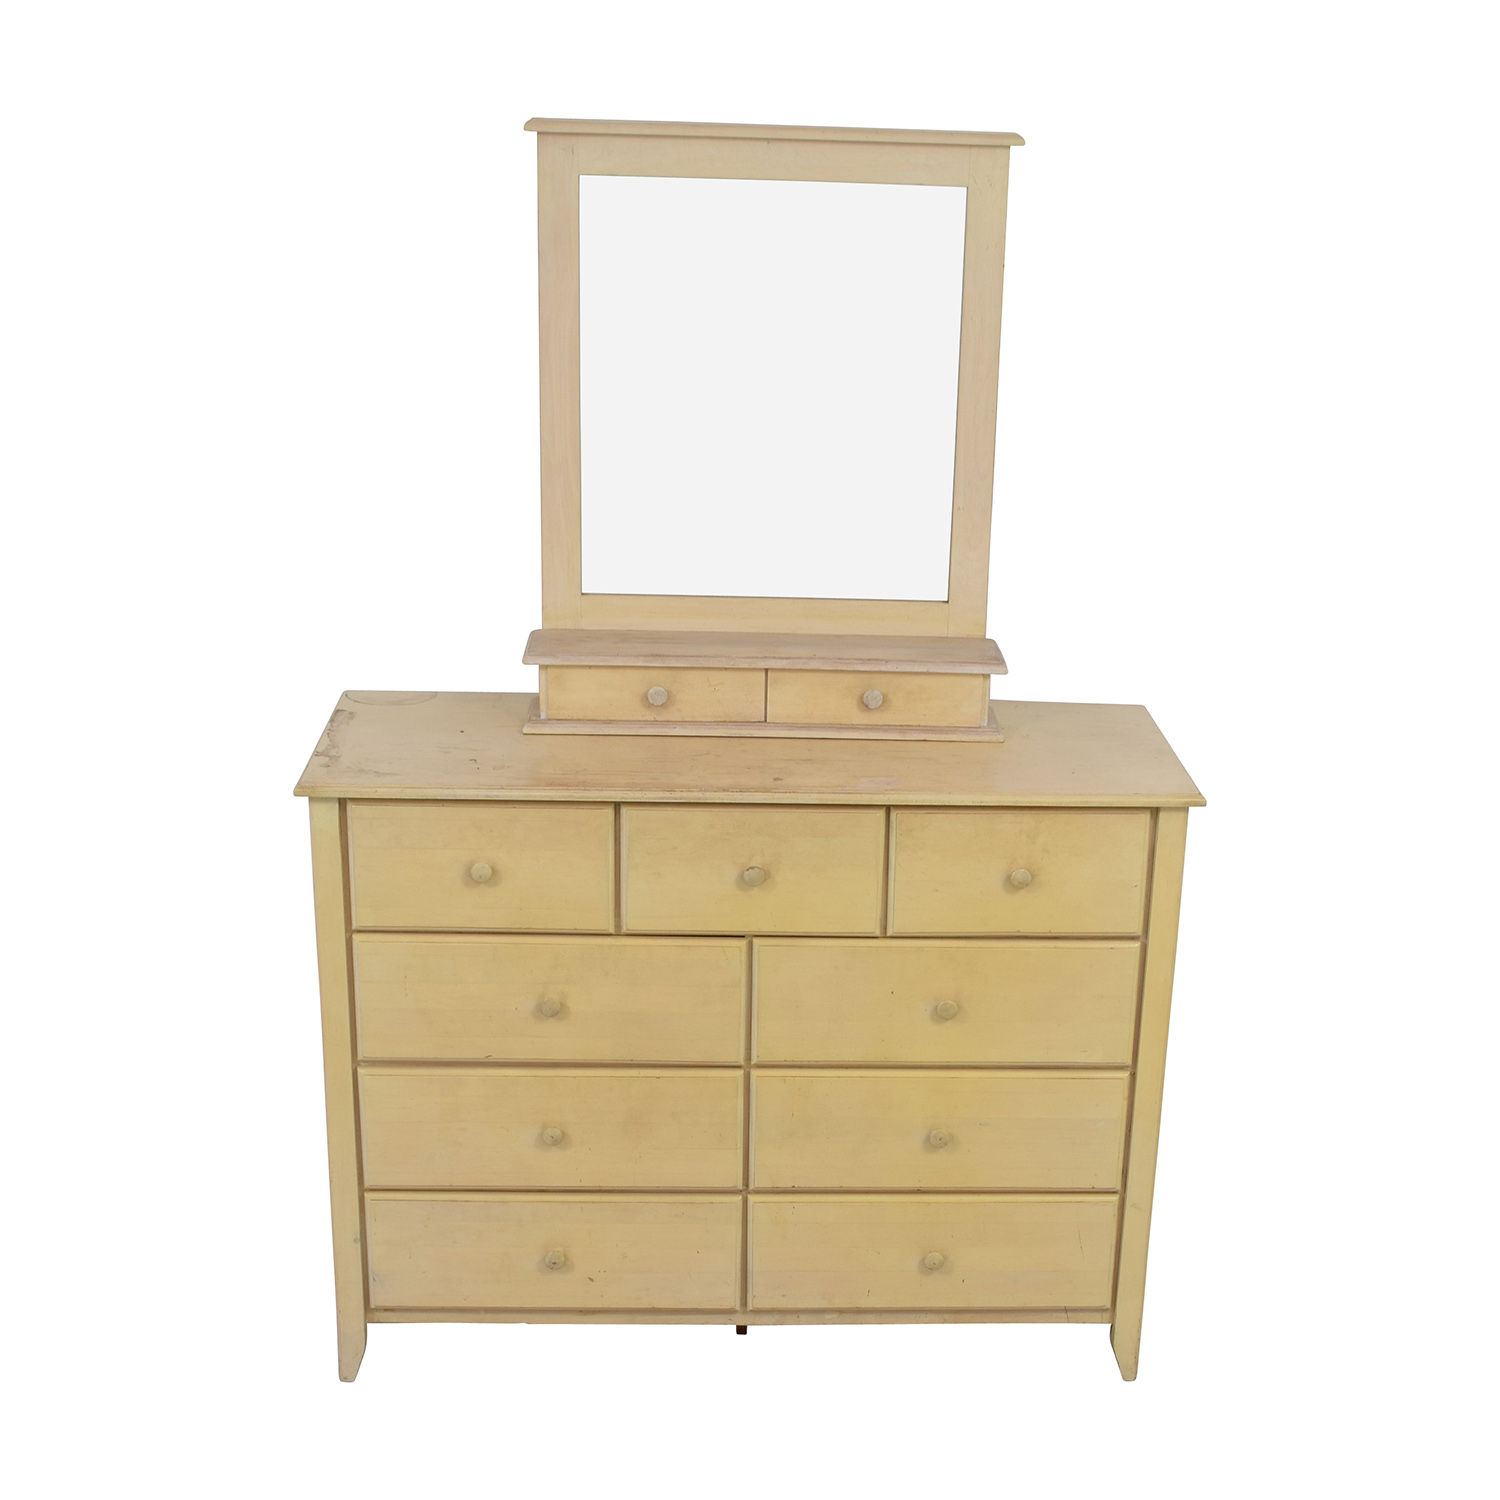 Gothic Cabinet Craft Gothic Cabinet Craft Nine-Drawer Dresser with Vanity Mirror discount